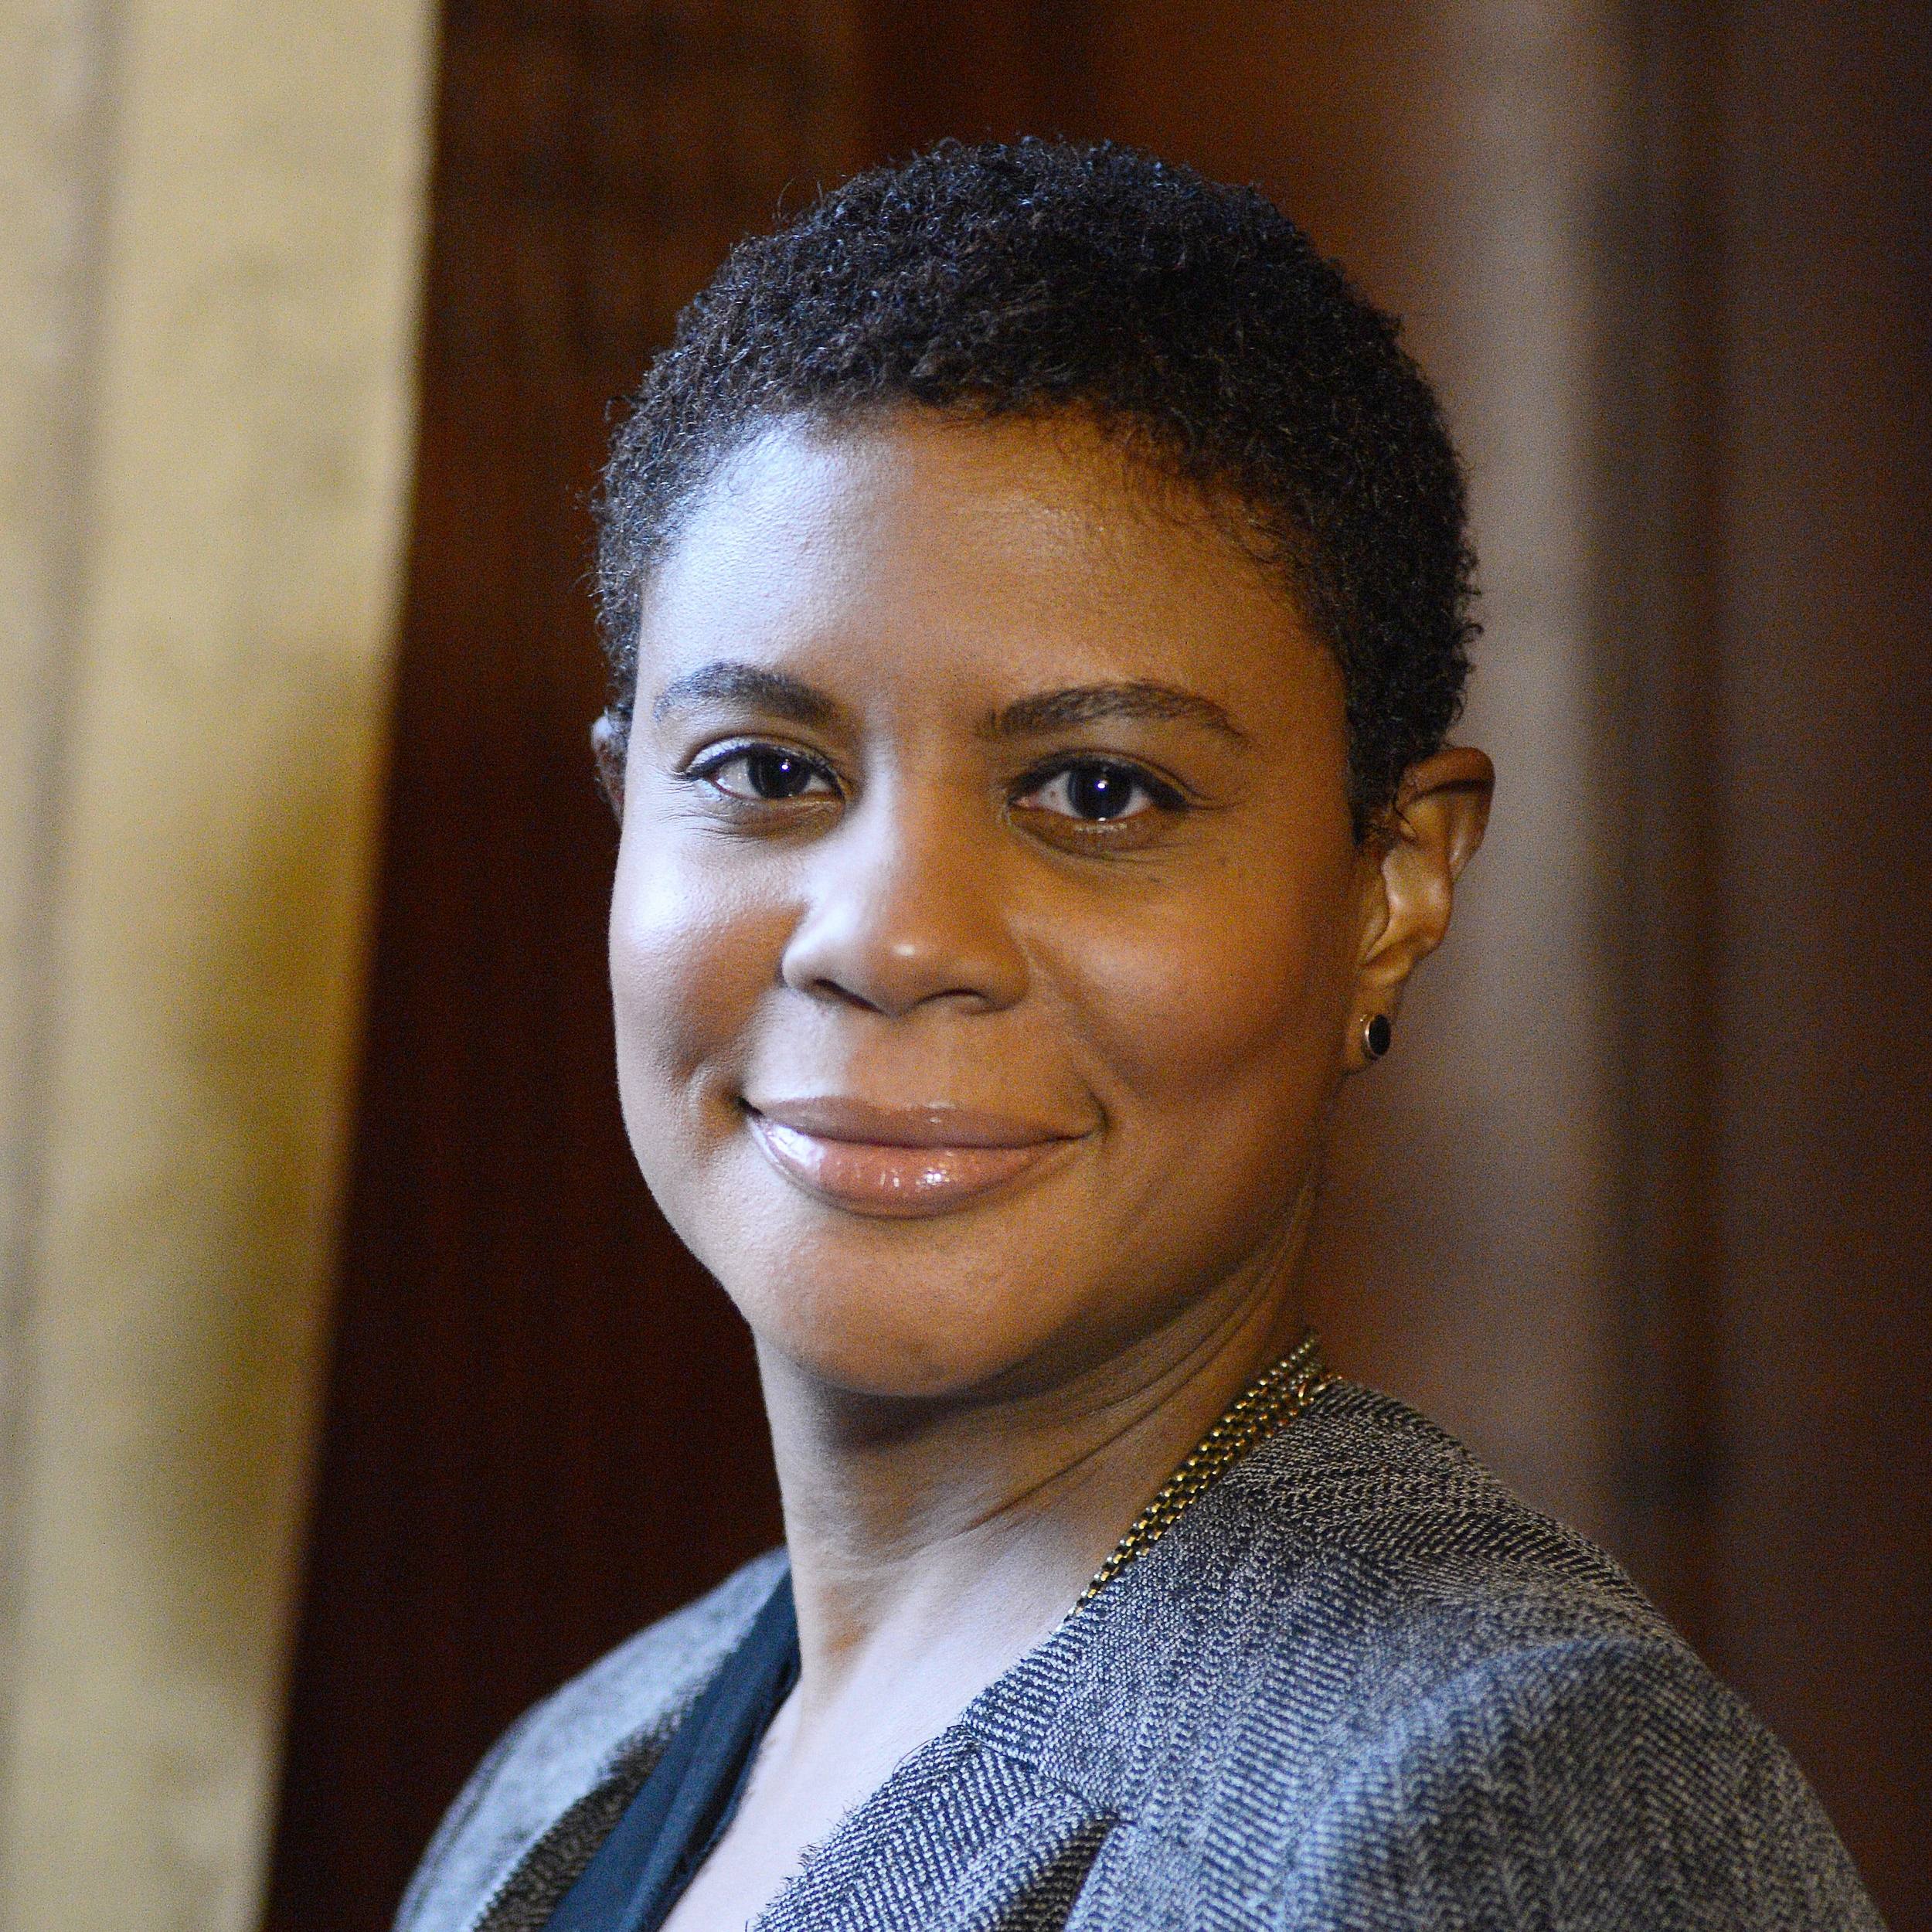 Alondra Nelson - Alondra Nelson, Ph.D., is president of the Social Science Research Council and professor of sociology at Columbia University. An award-winning scholar of science, medicine, and social inequality, her recent books include The Social Life of DNA: Race, Reparations, and Reconciliation after the Genome, Genetics and the Unsettled Past: The Collision of DNA, Race, and History, and Body and Soul: The Black Panther Party and the Fight Against Medical Discrimination. Alondra has contributed to national policy discussions on inequality, and about the social implications of new technologies, including artificial intelligence, big data, direct-to-consumer genetics, and human gene-editing. She serves on the Board of Directors of the Data & Society Research Institute. Alondra is chair of the American Sociological Association Section on Science, Knowledge, and Technology and is an elected member of the Sociological Research Association.